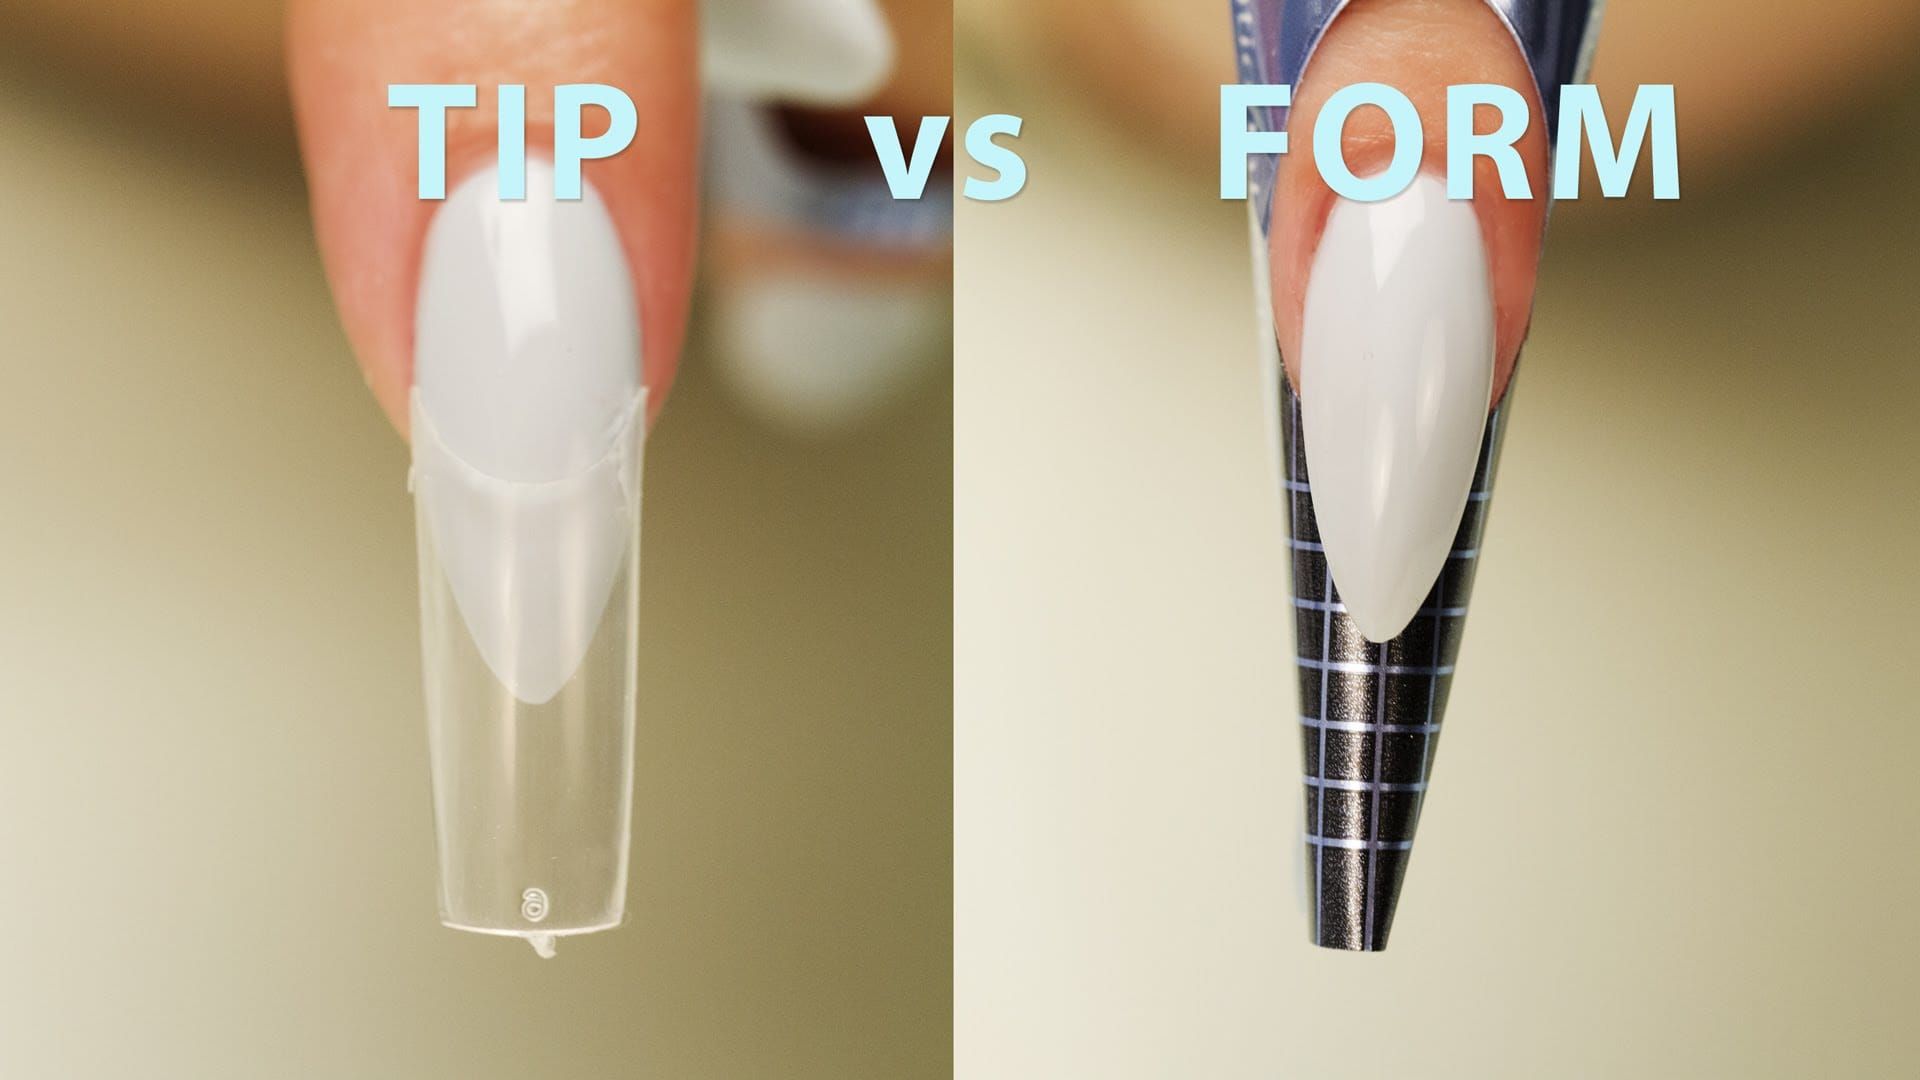 Nail Tips vs. Nail Forms: Which is Better and Why?